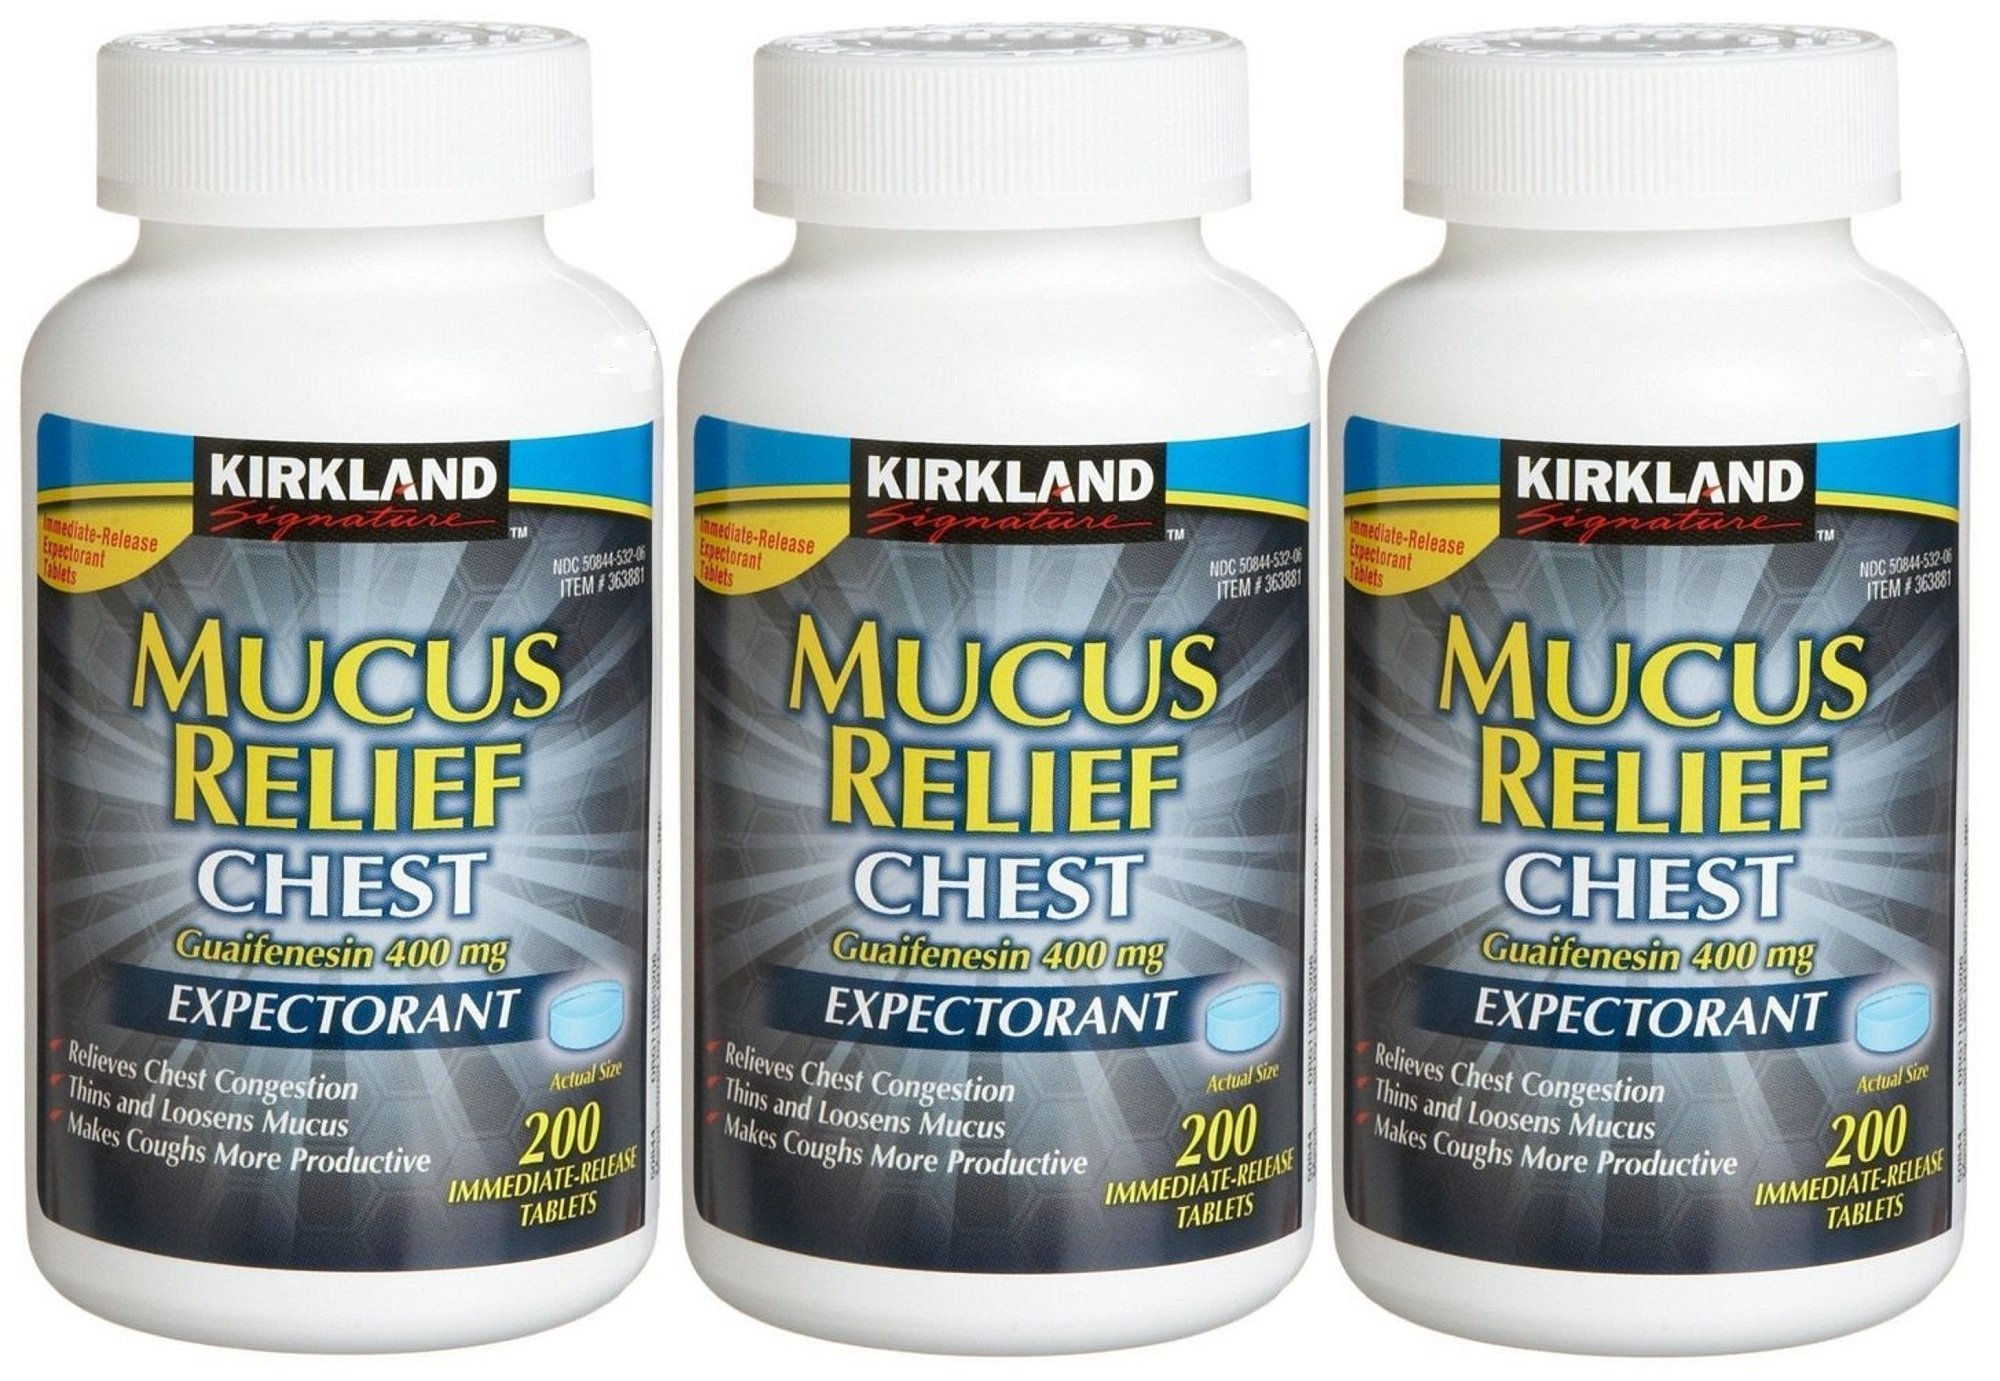 Kirkland Signature Mucus Relief Chest Guaifenesin 400 mg Expectorant - 200 tablets, 3 pack by Kirkland Signature